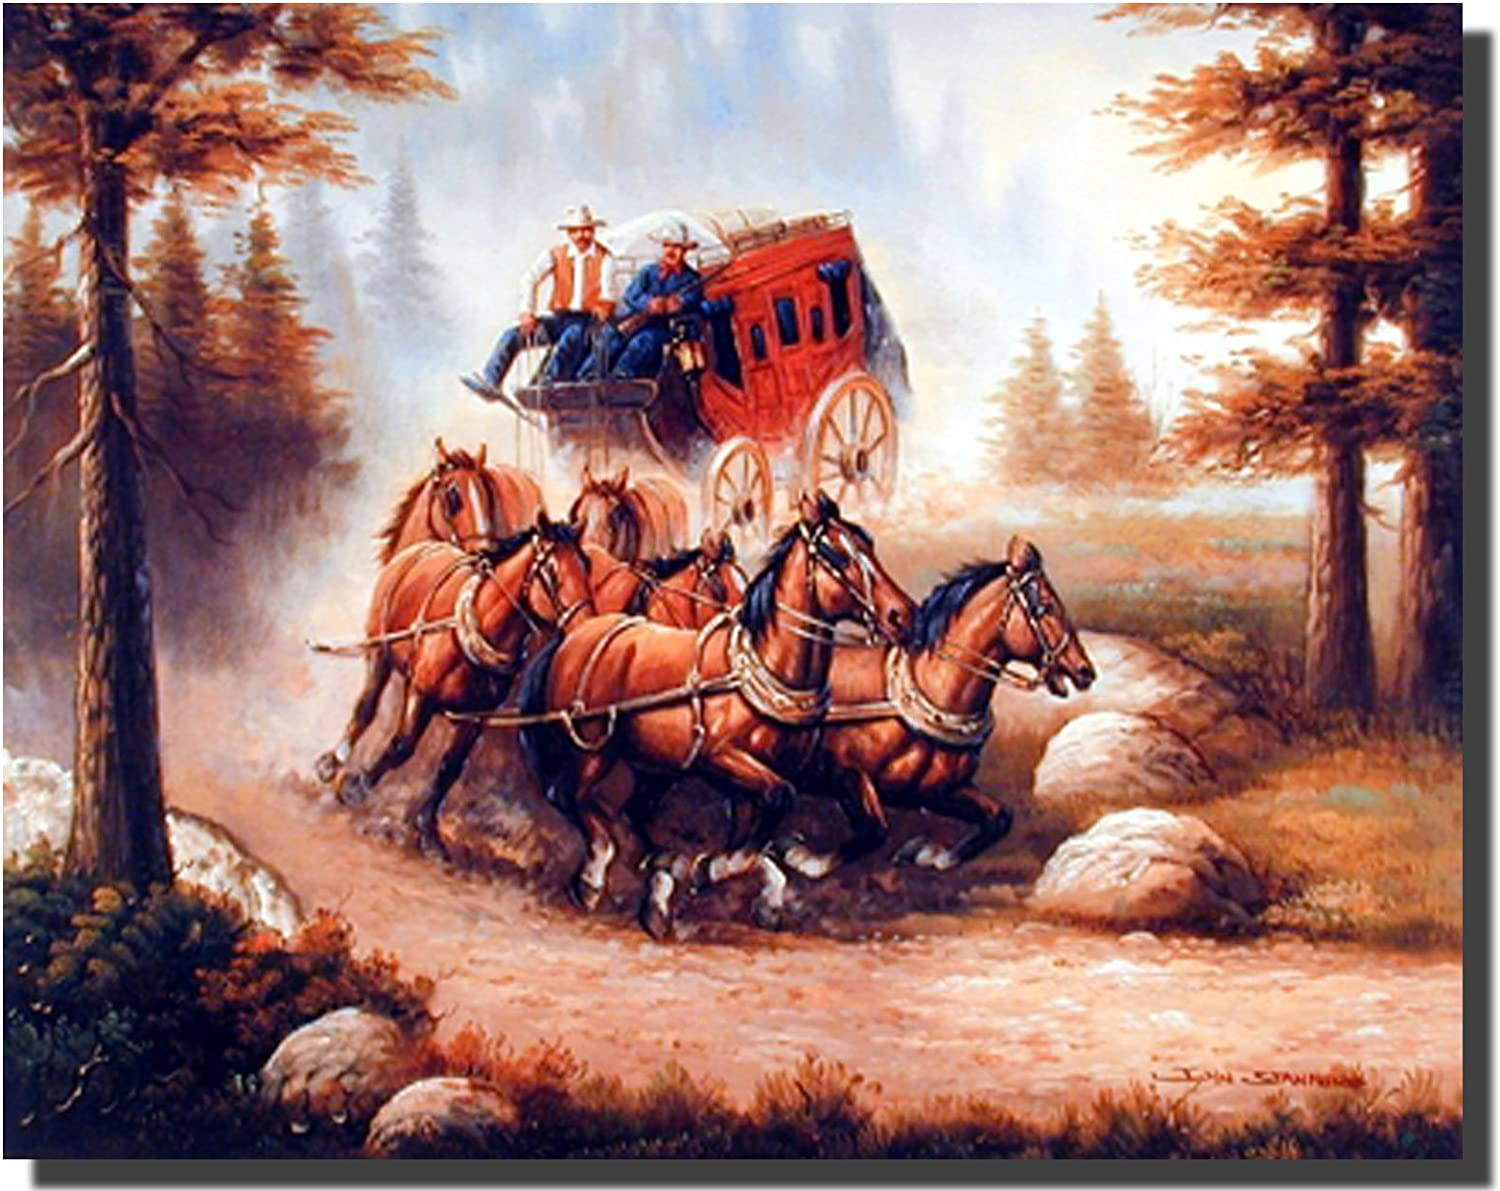 Western Wall Decor Cowboy With Old Red Stagecoach and Running Horses Art Print Poster (16x20)